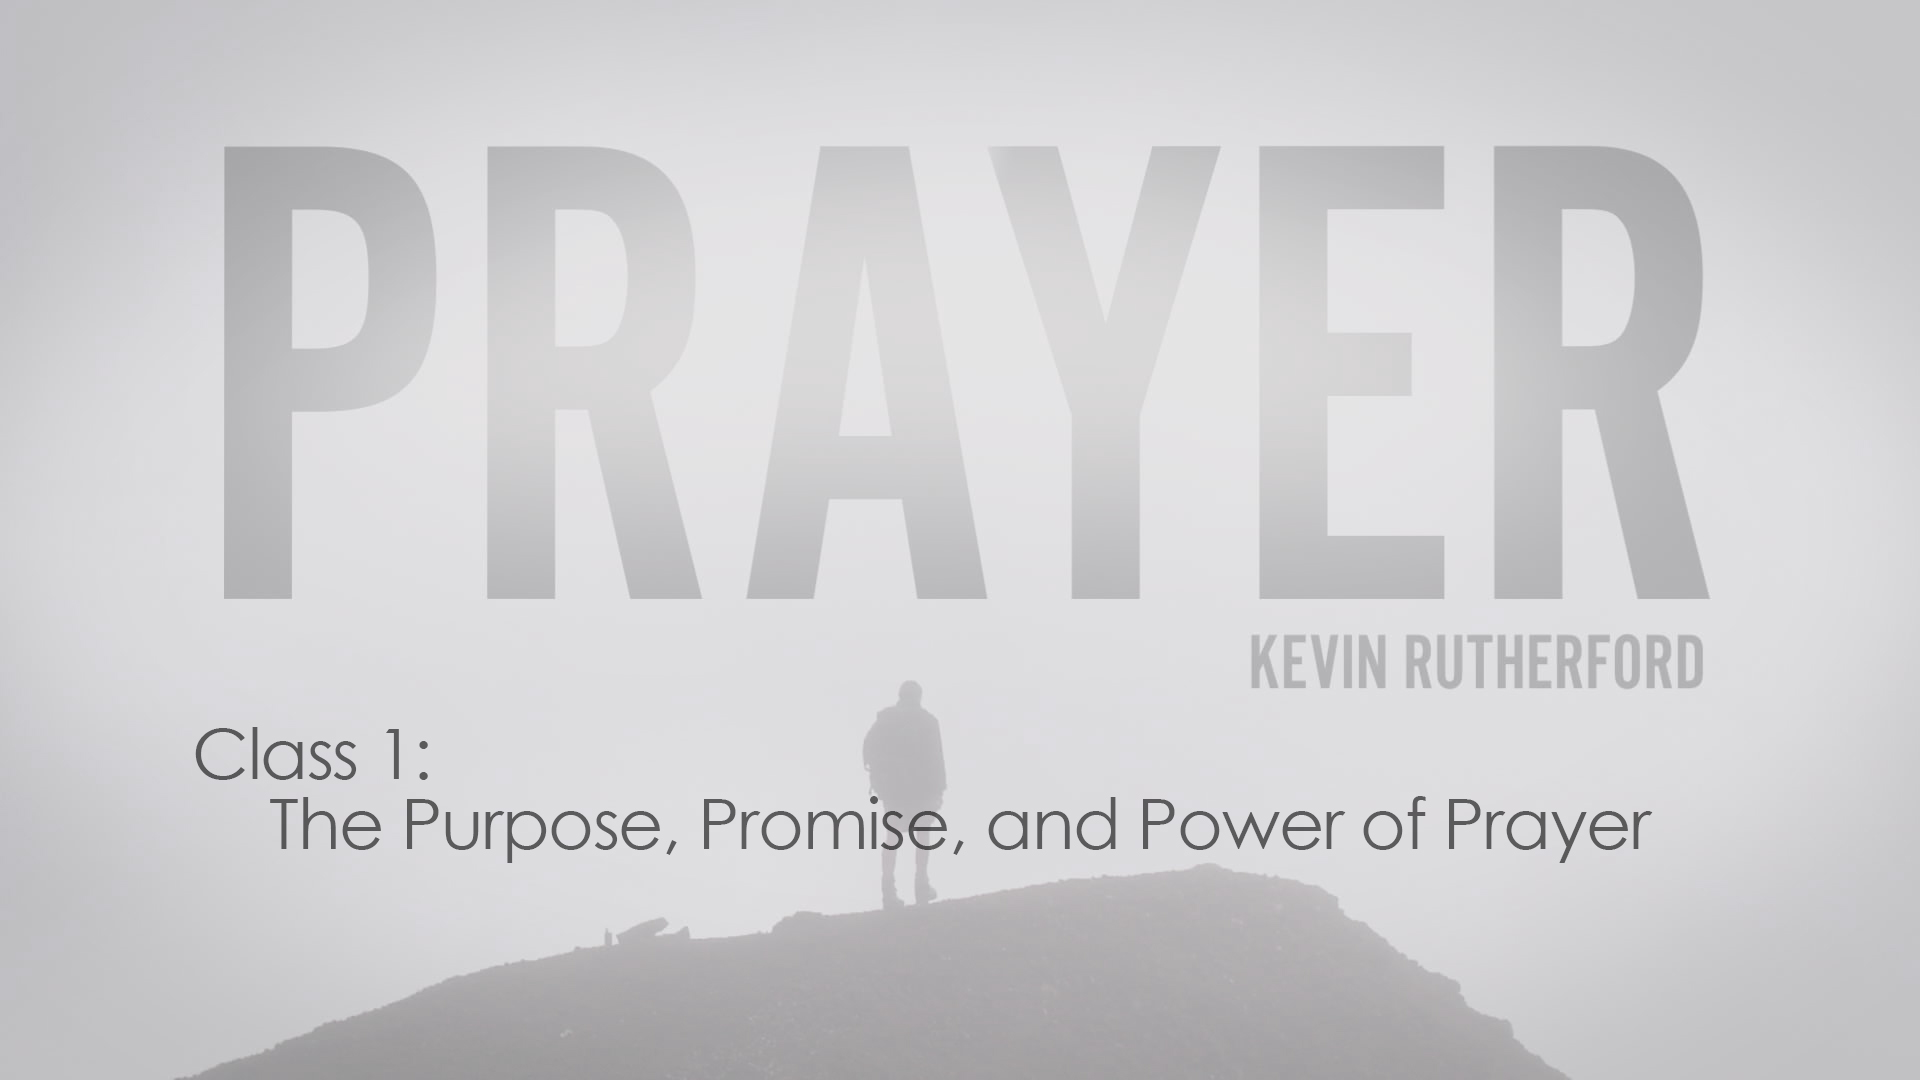 1. The Purpose, Promise, and Power of Prayer